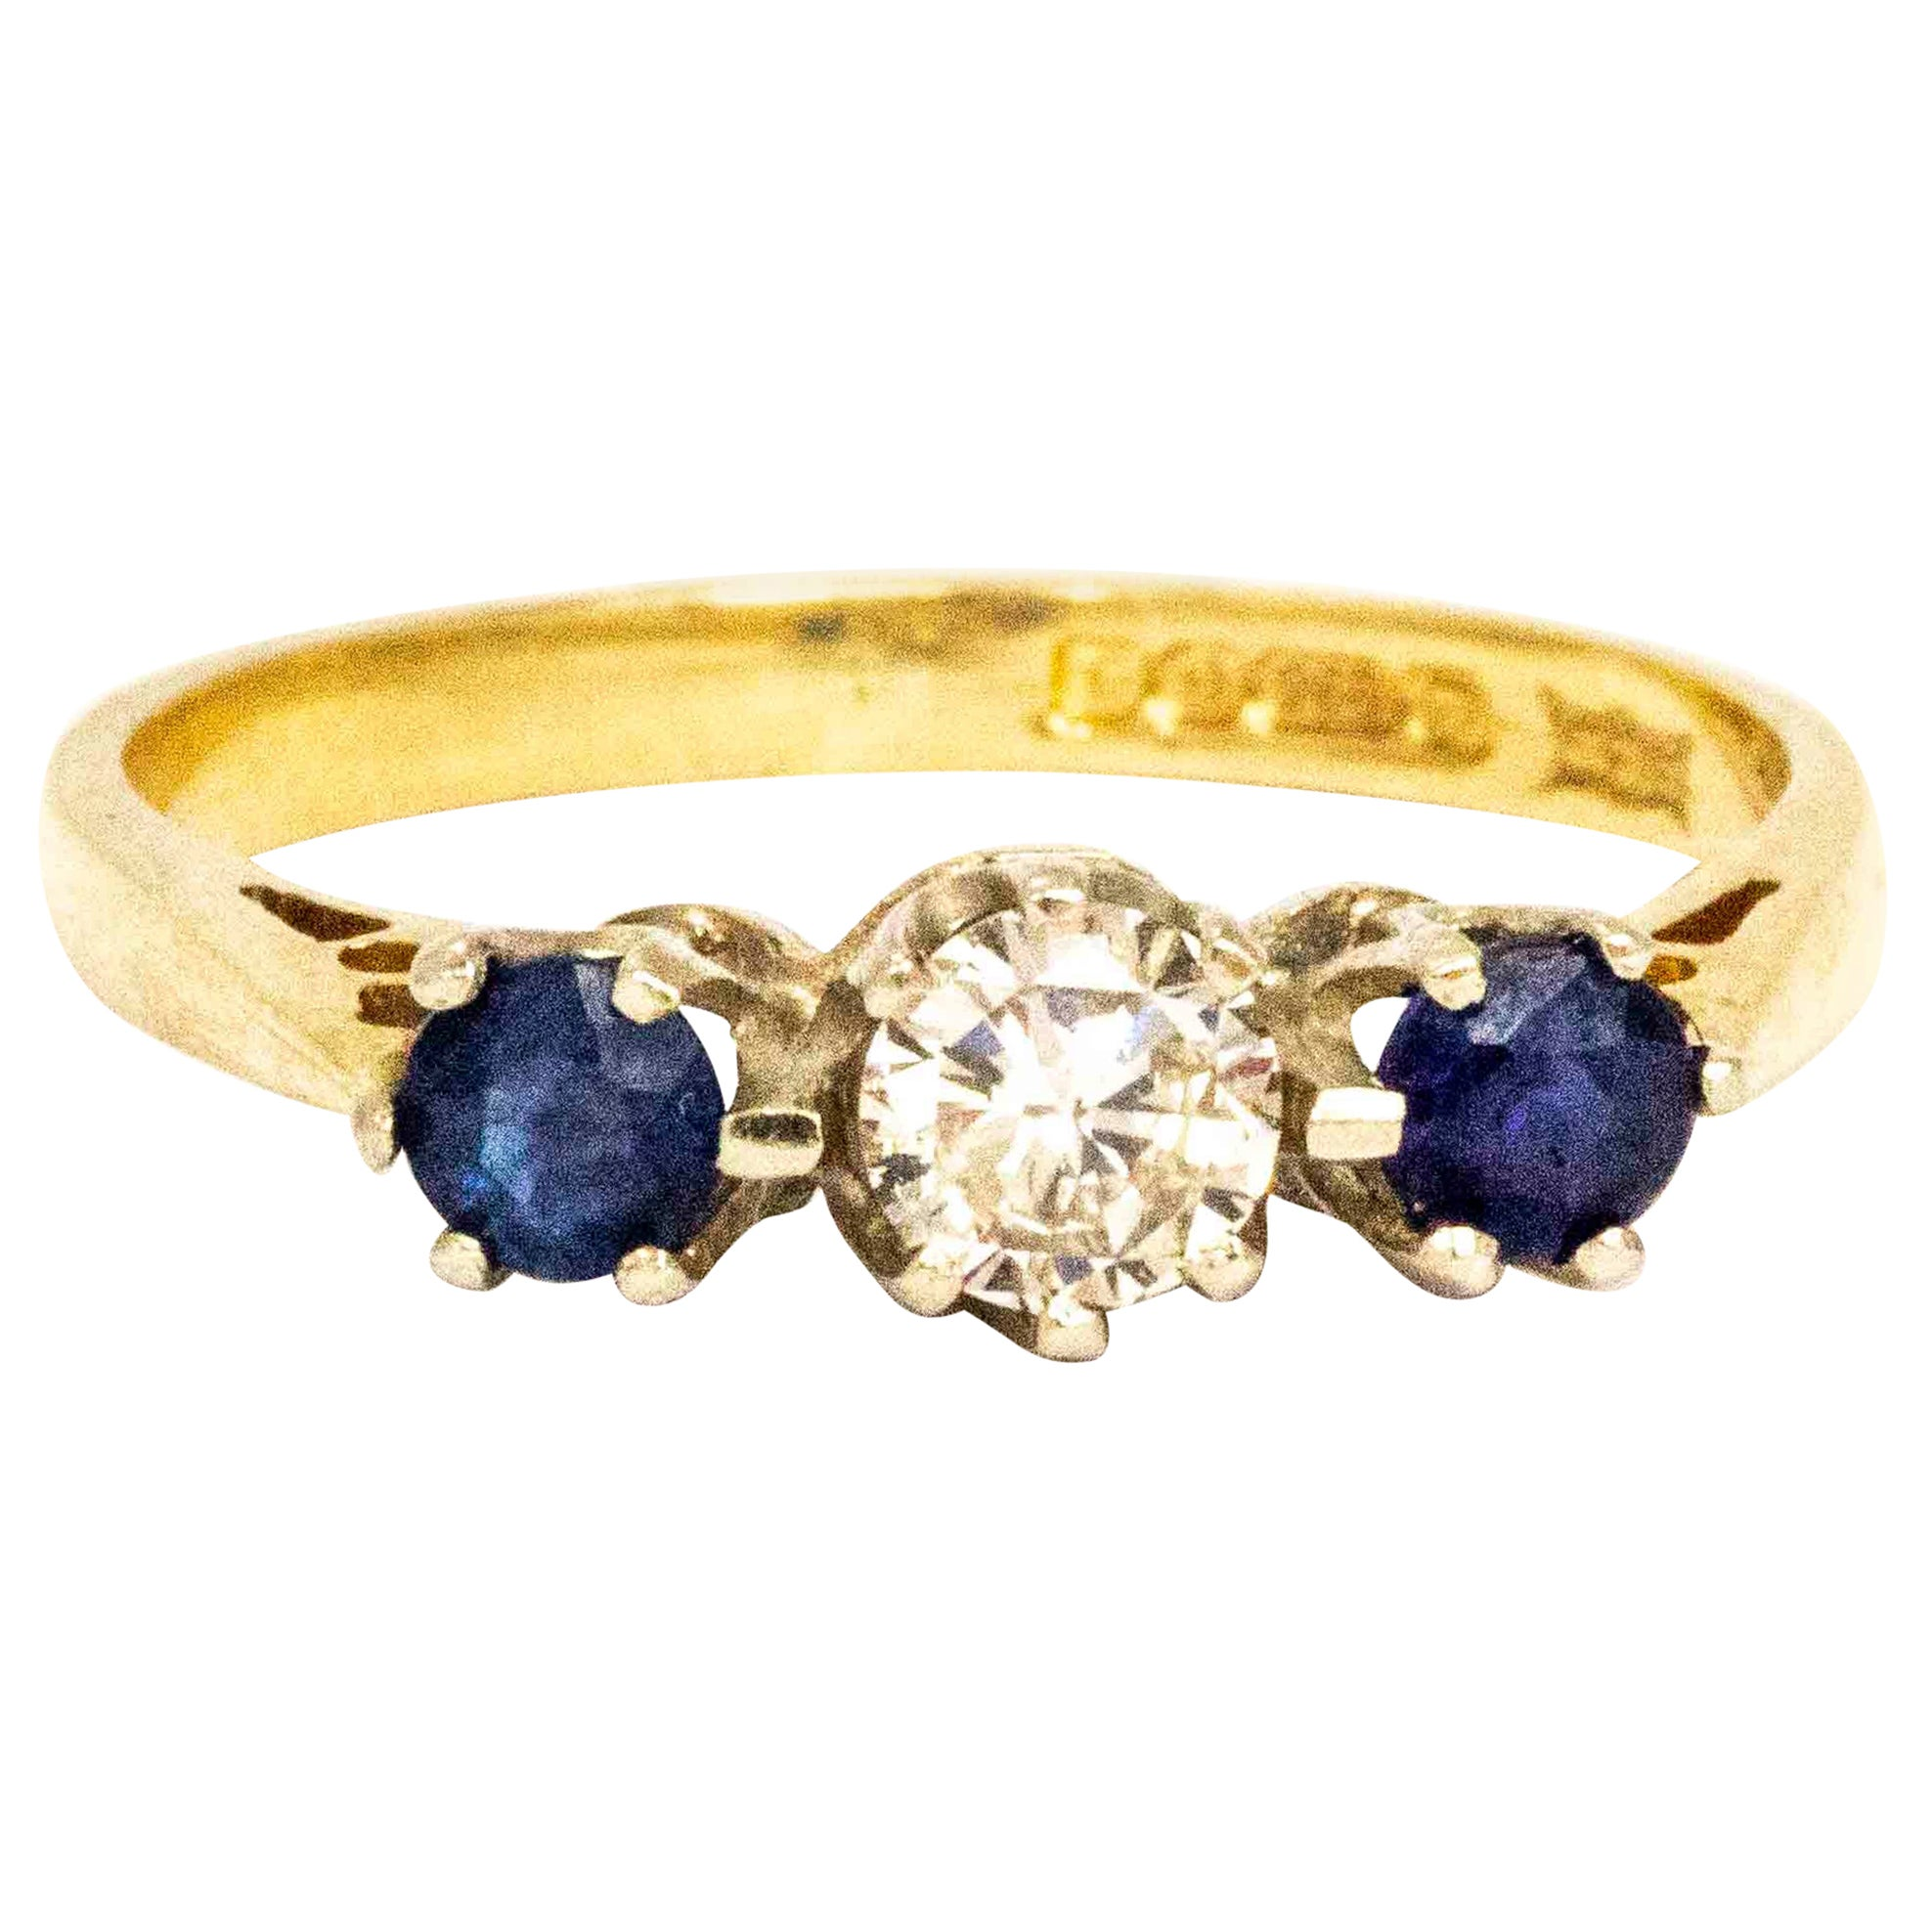 Vintage Diamond and Sapphire 9 Carat Gold Three-Stone Ring